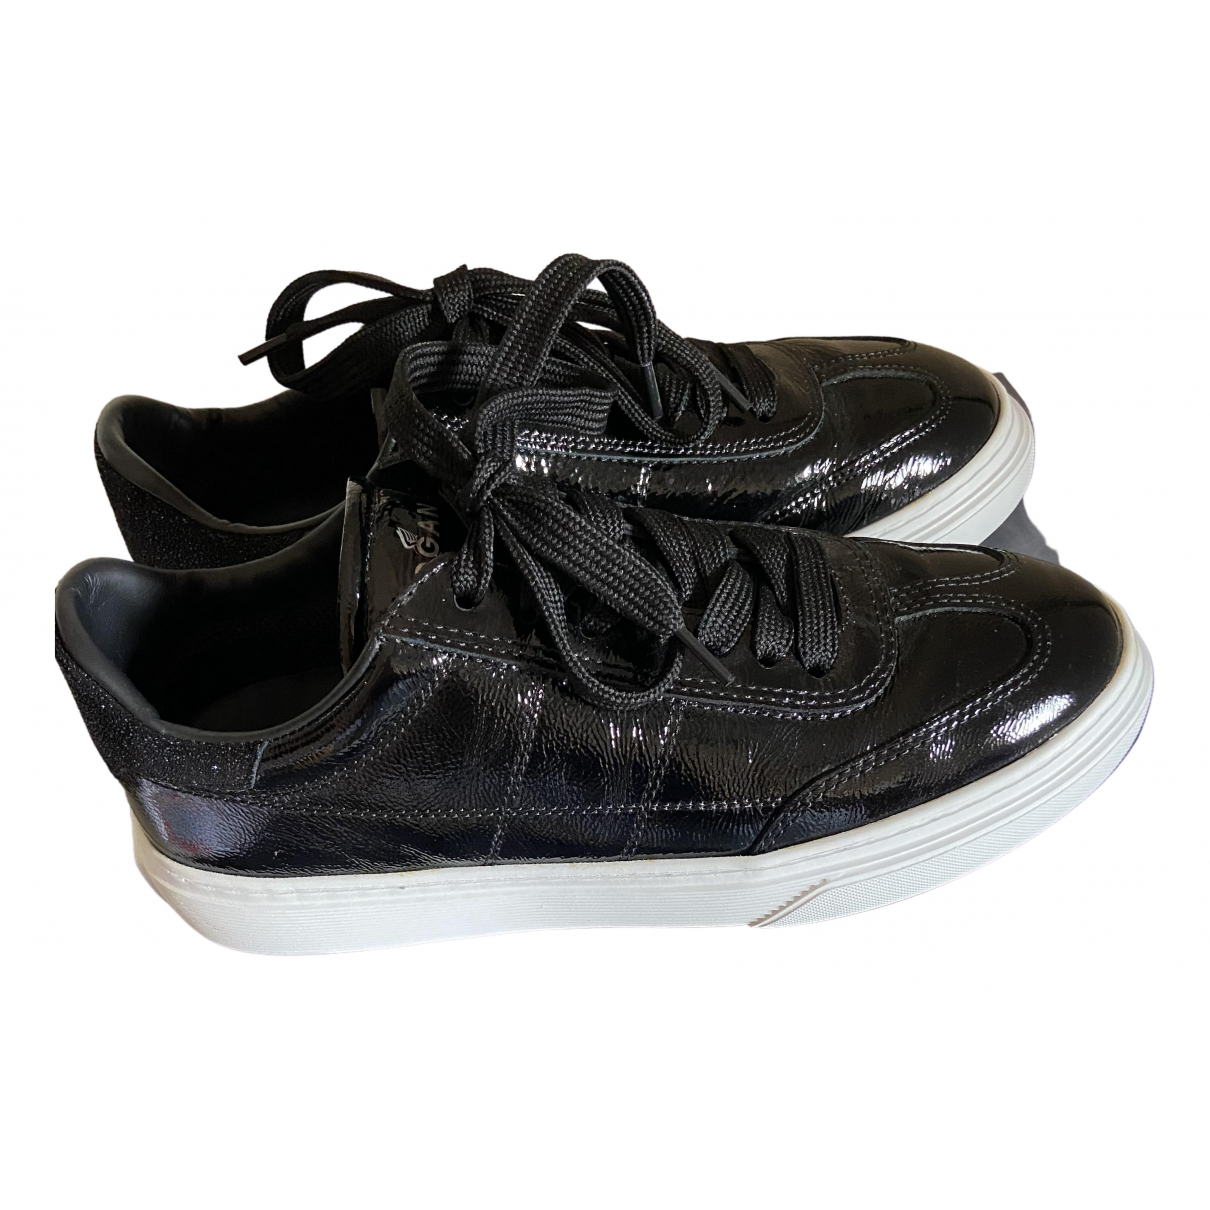 Hogan \N Sneakers in  Schwarz Lackleder